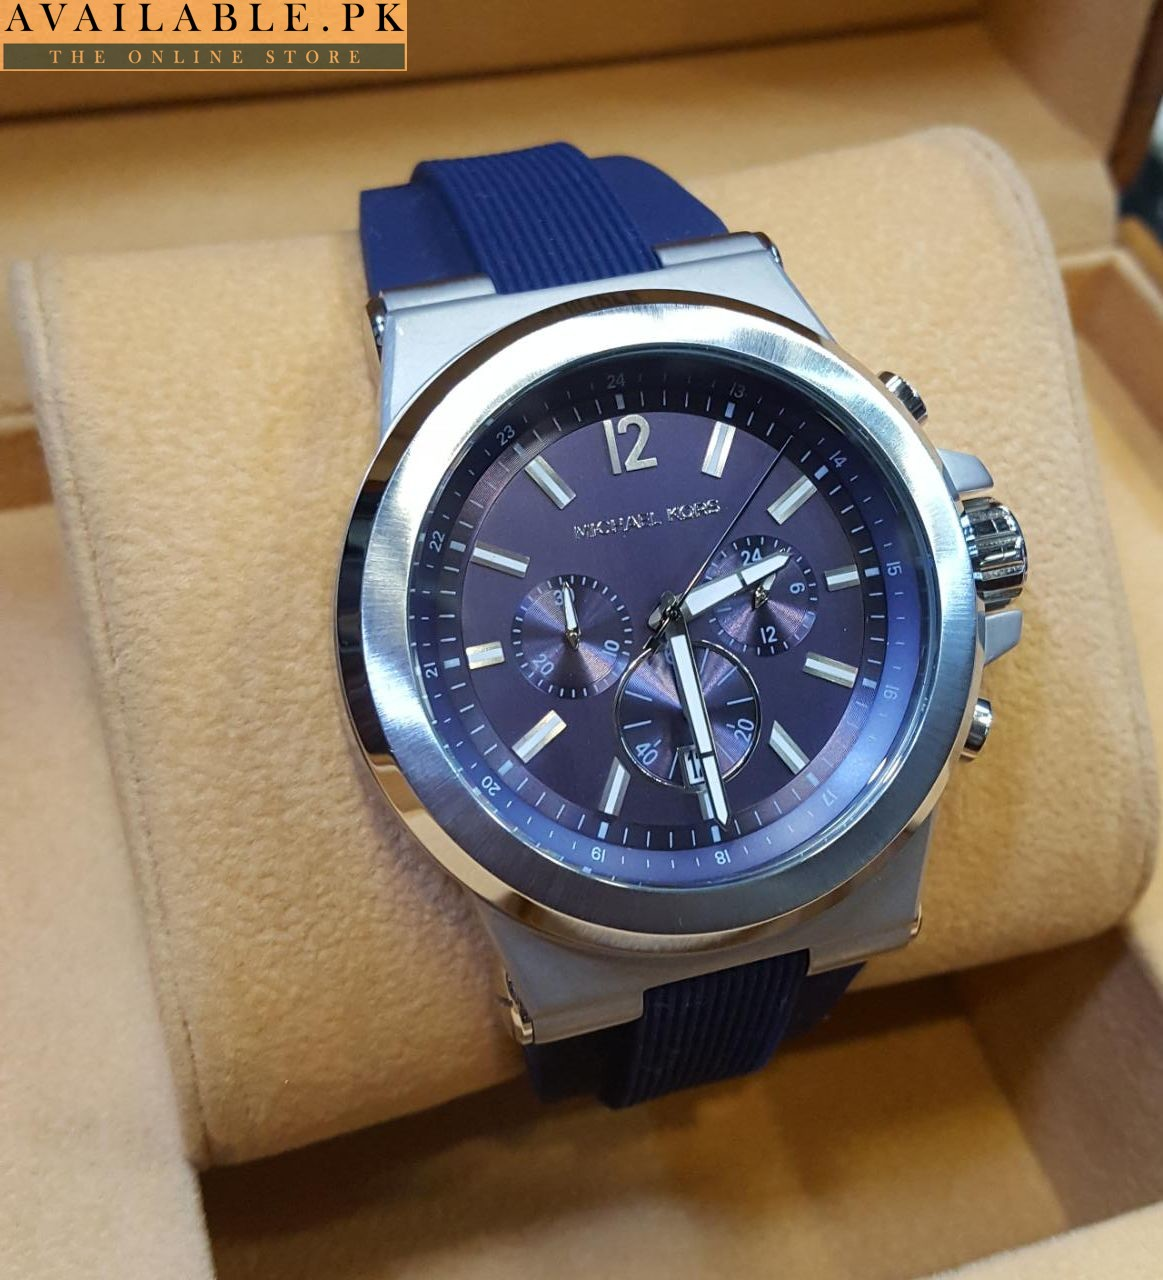 c756891f19ae Michael Kors Chronograph Dylan Navy Silicone Strap Watch 48mm MK8295 For Men  Price In Pakistan 2